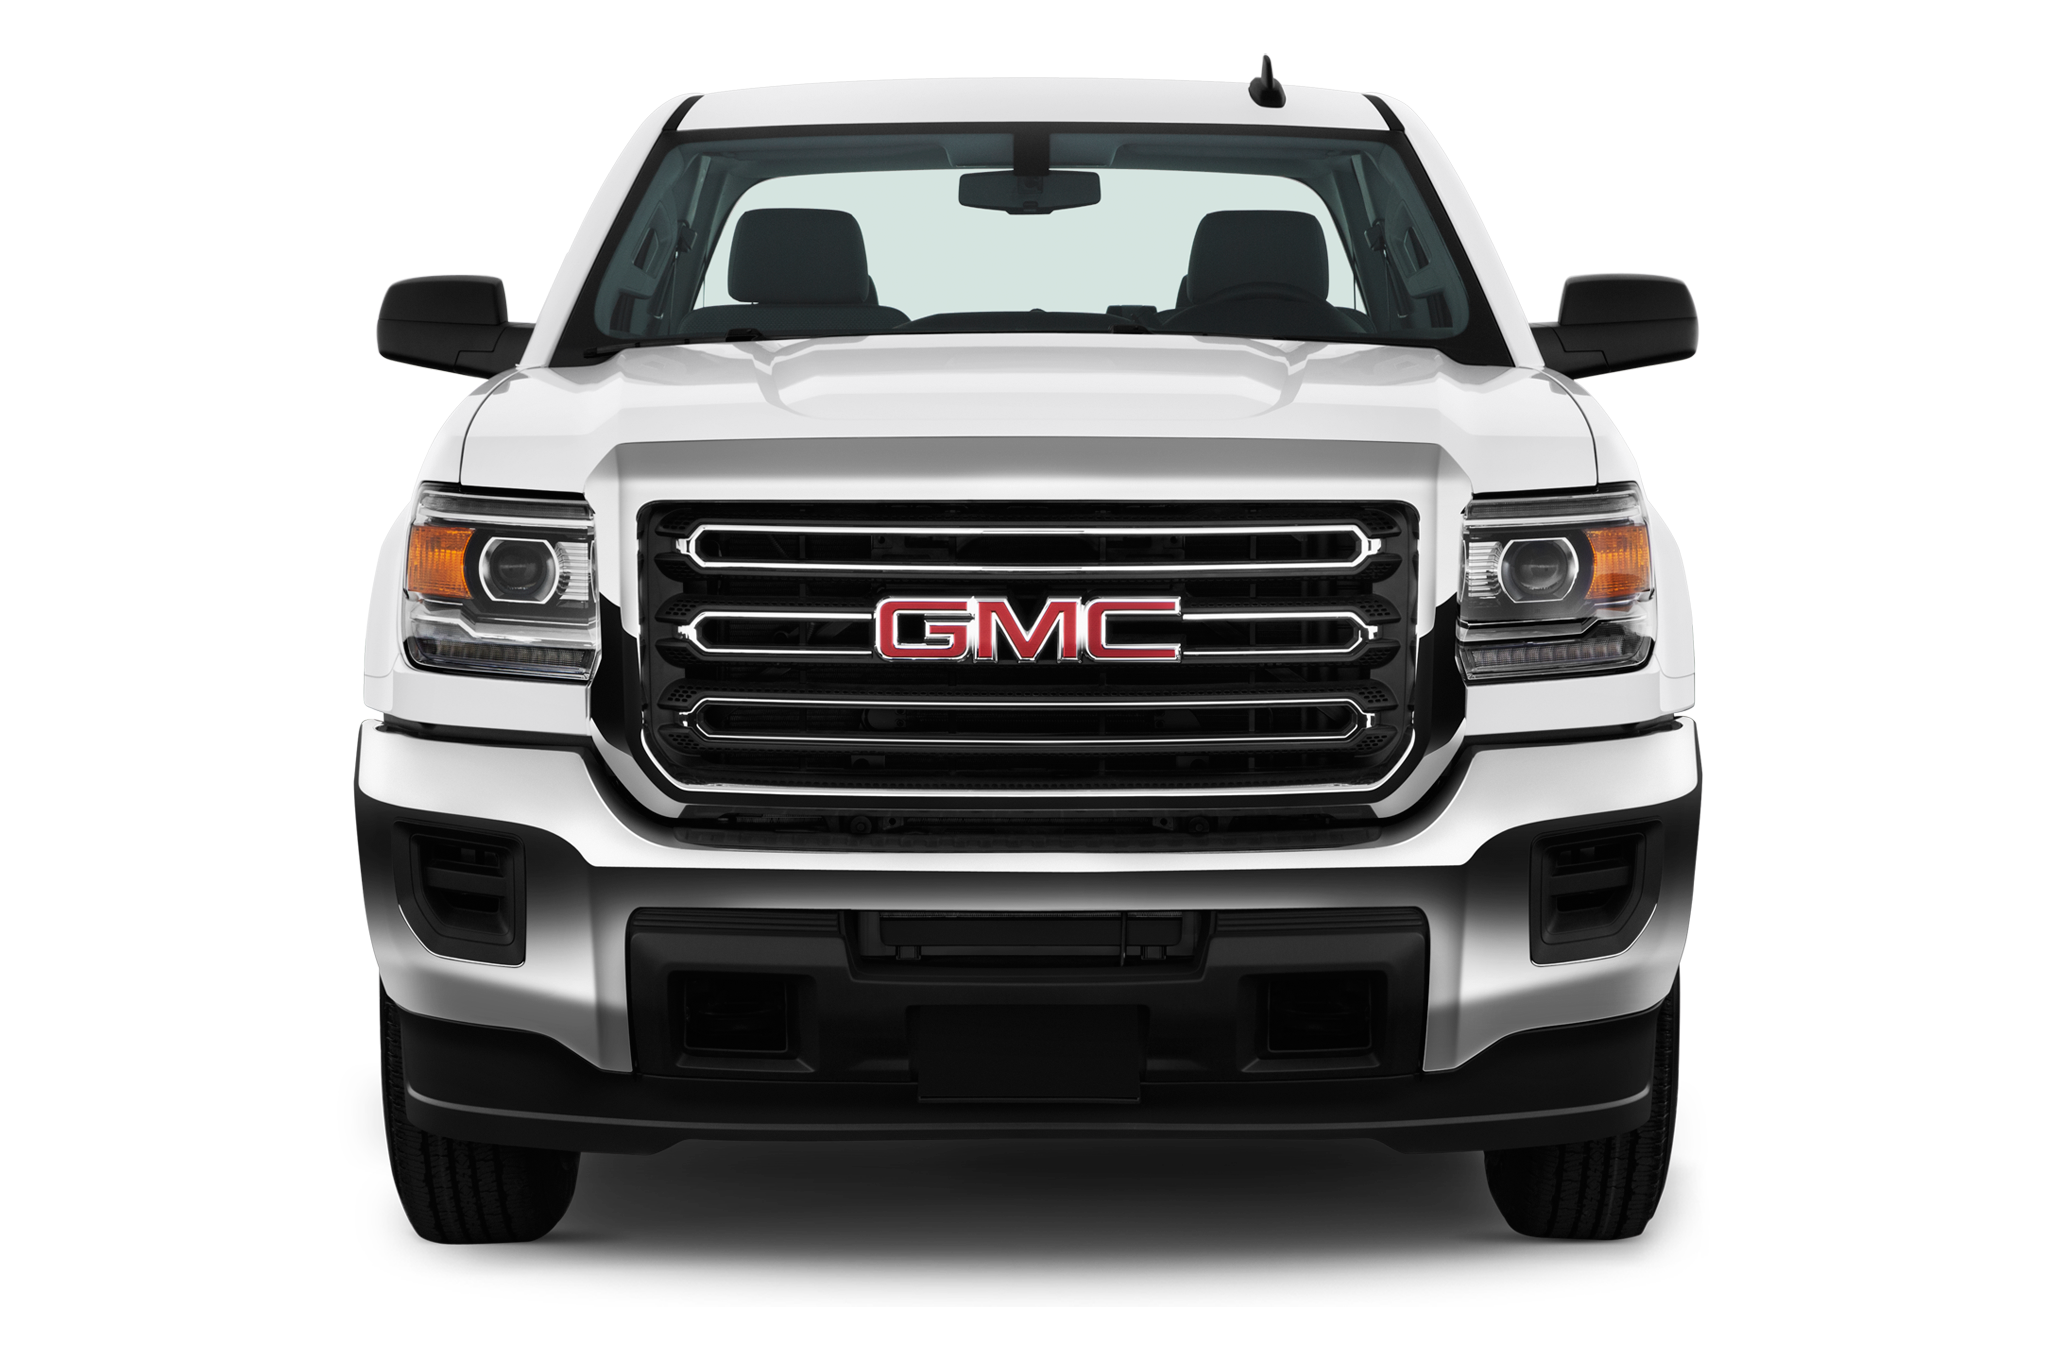 2016 Gmc Sierra 2500hd Crew Cab >> 2017 GMC Sierra 2500 and 3500 Denali HD Duramax Review %%sep% Automobile Magazine